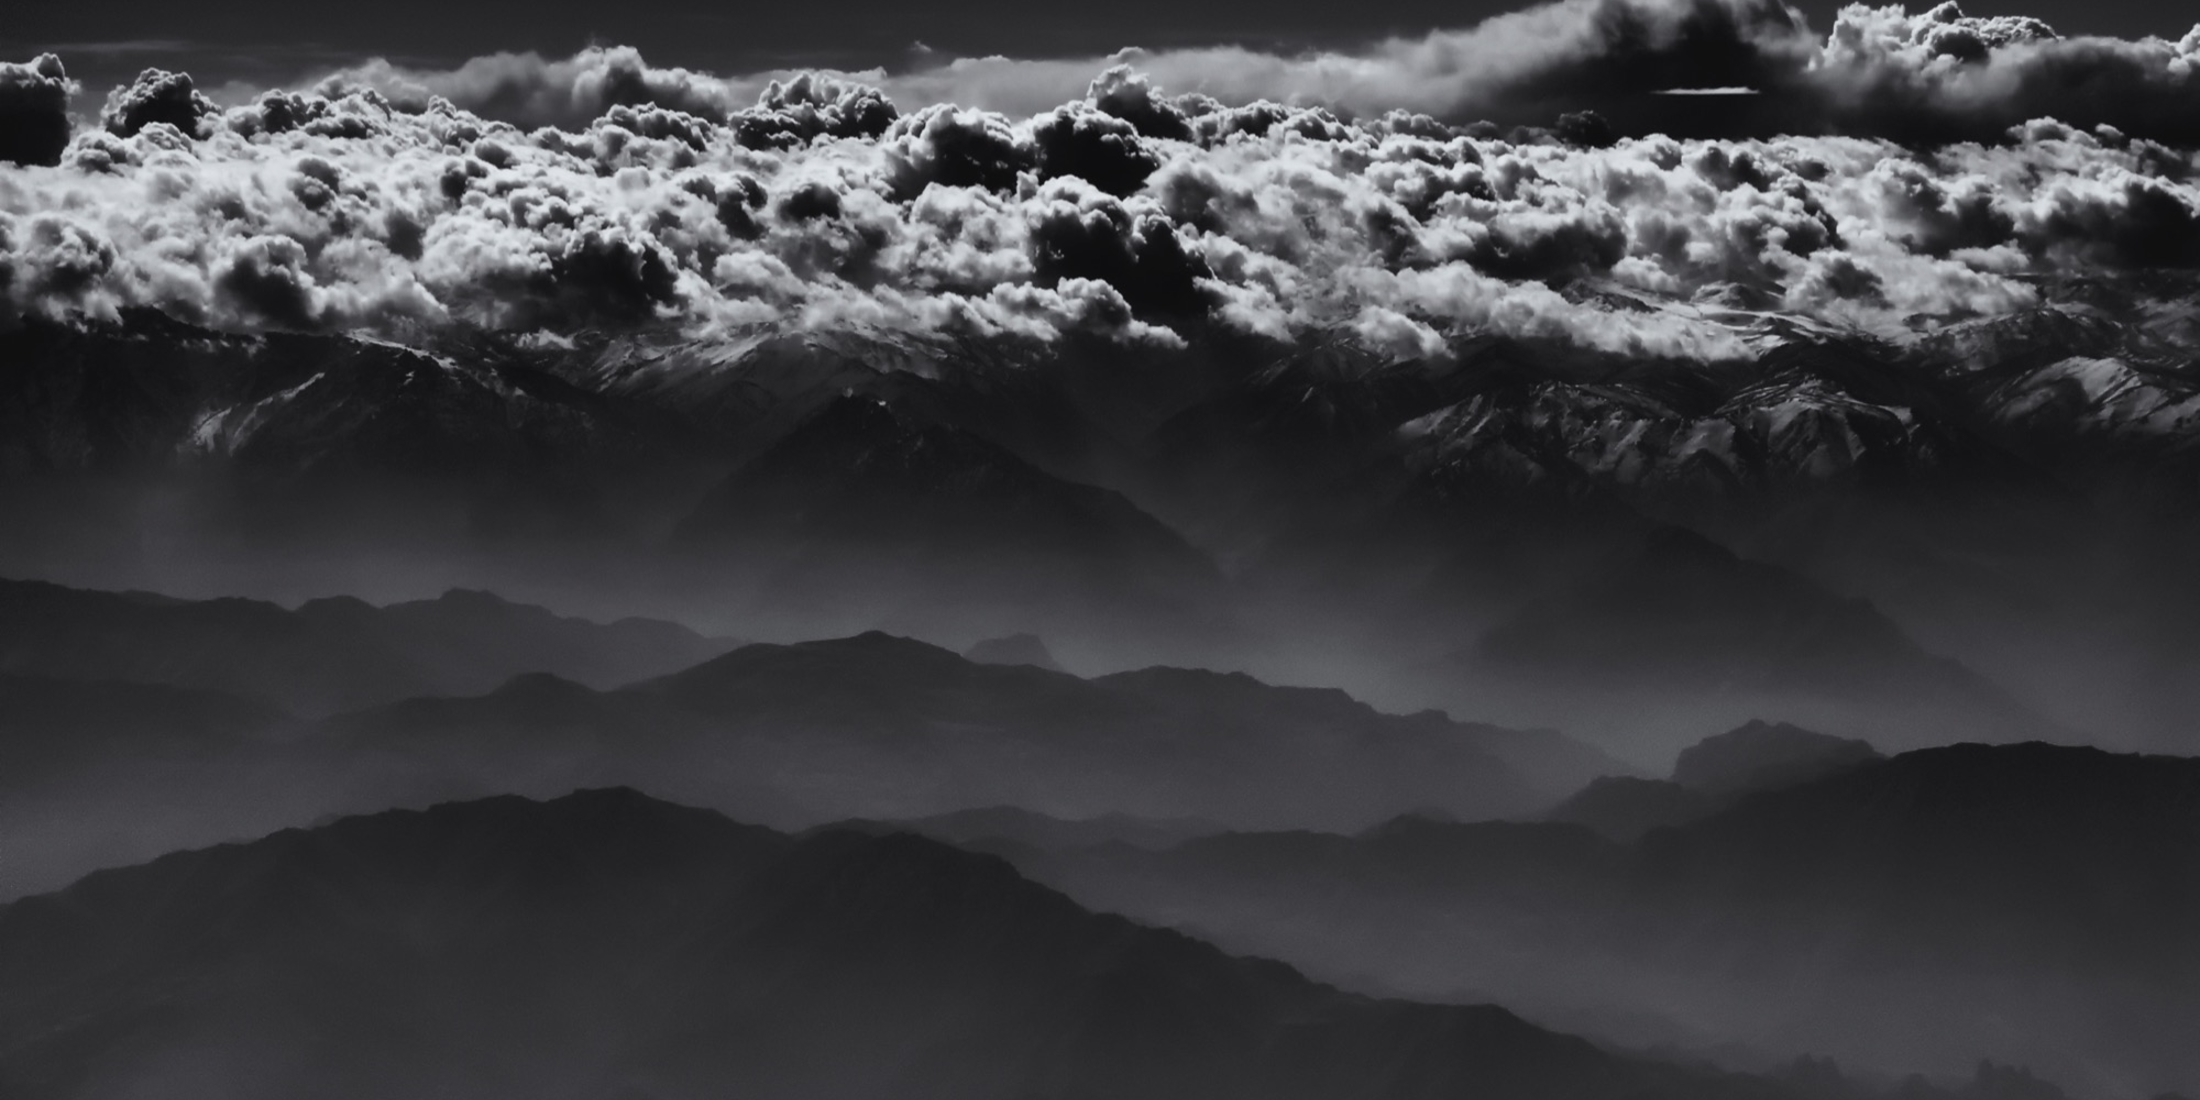 Valleys and Clouds